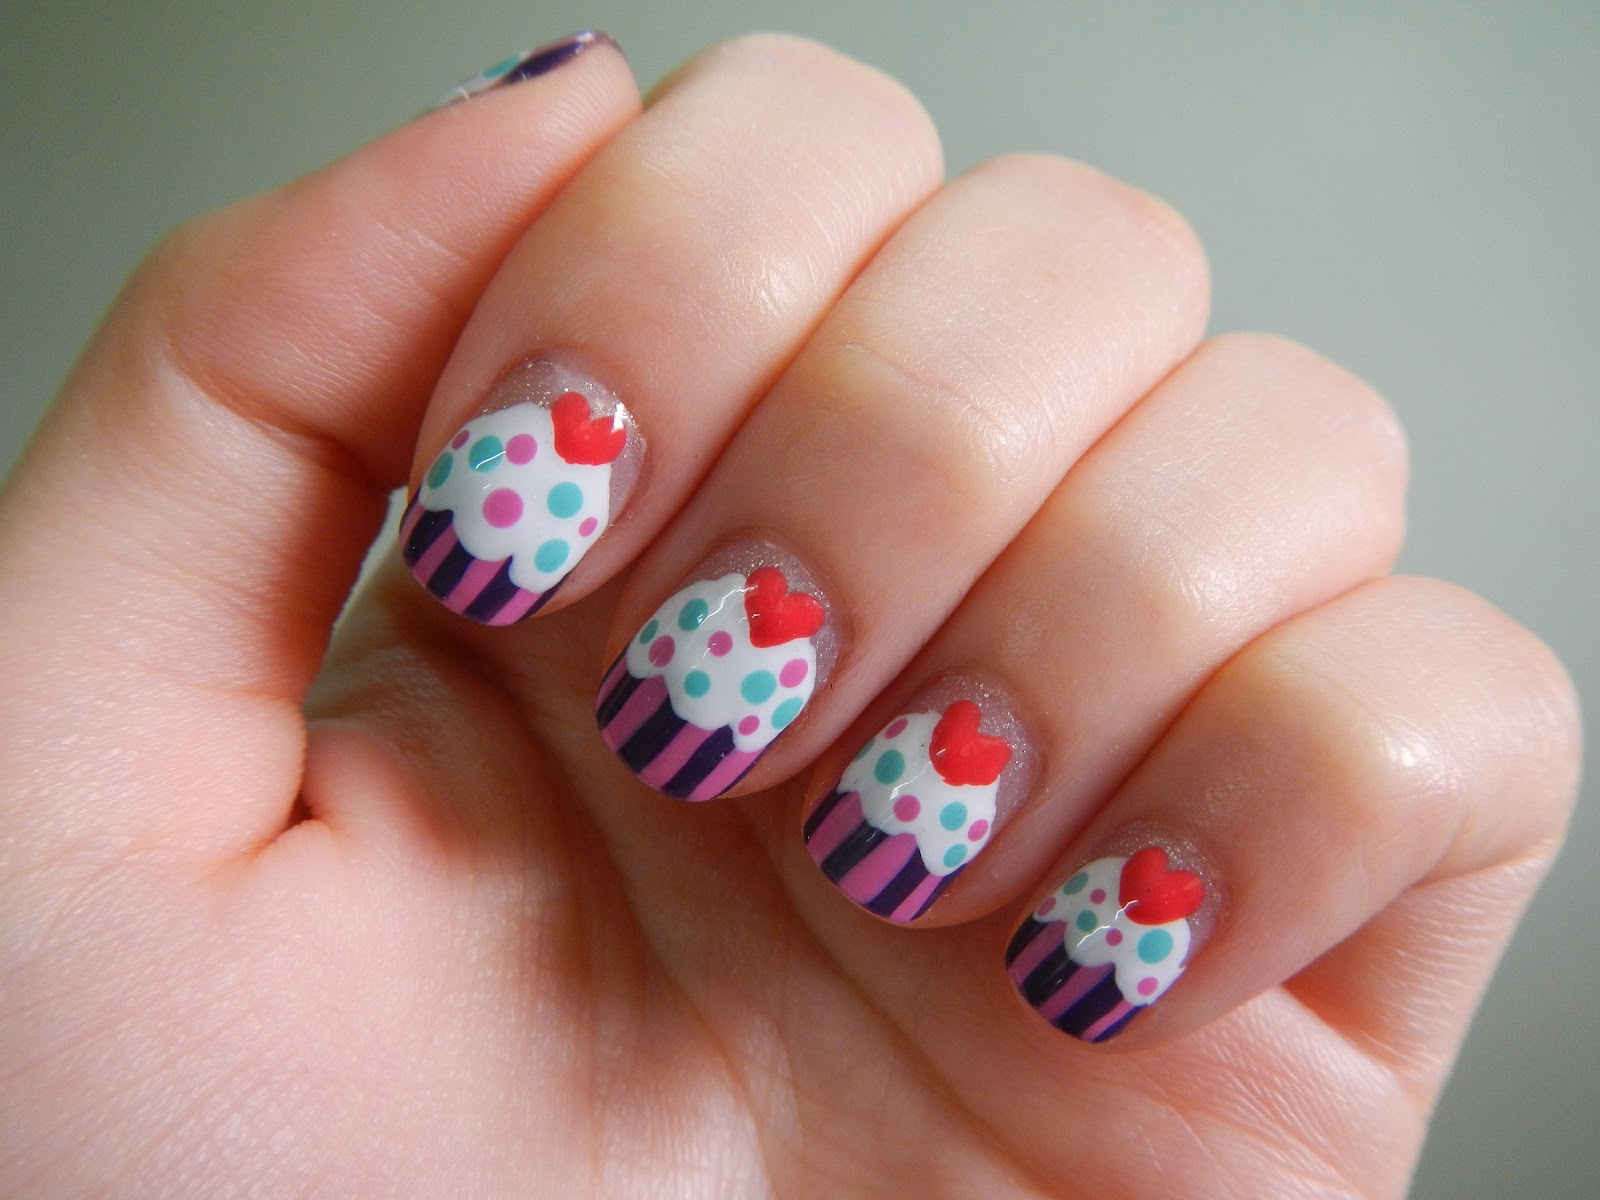 30 Awesome Cupcake Nail Art Designs 2015/16 30 Awesome Cupcake Nail Art Designs 2015/16 cupcake nail art design 3